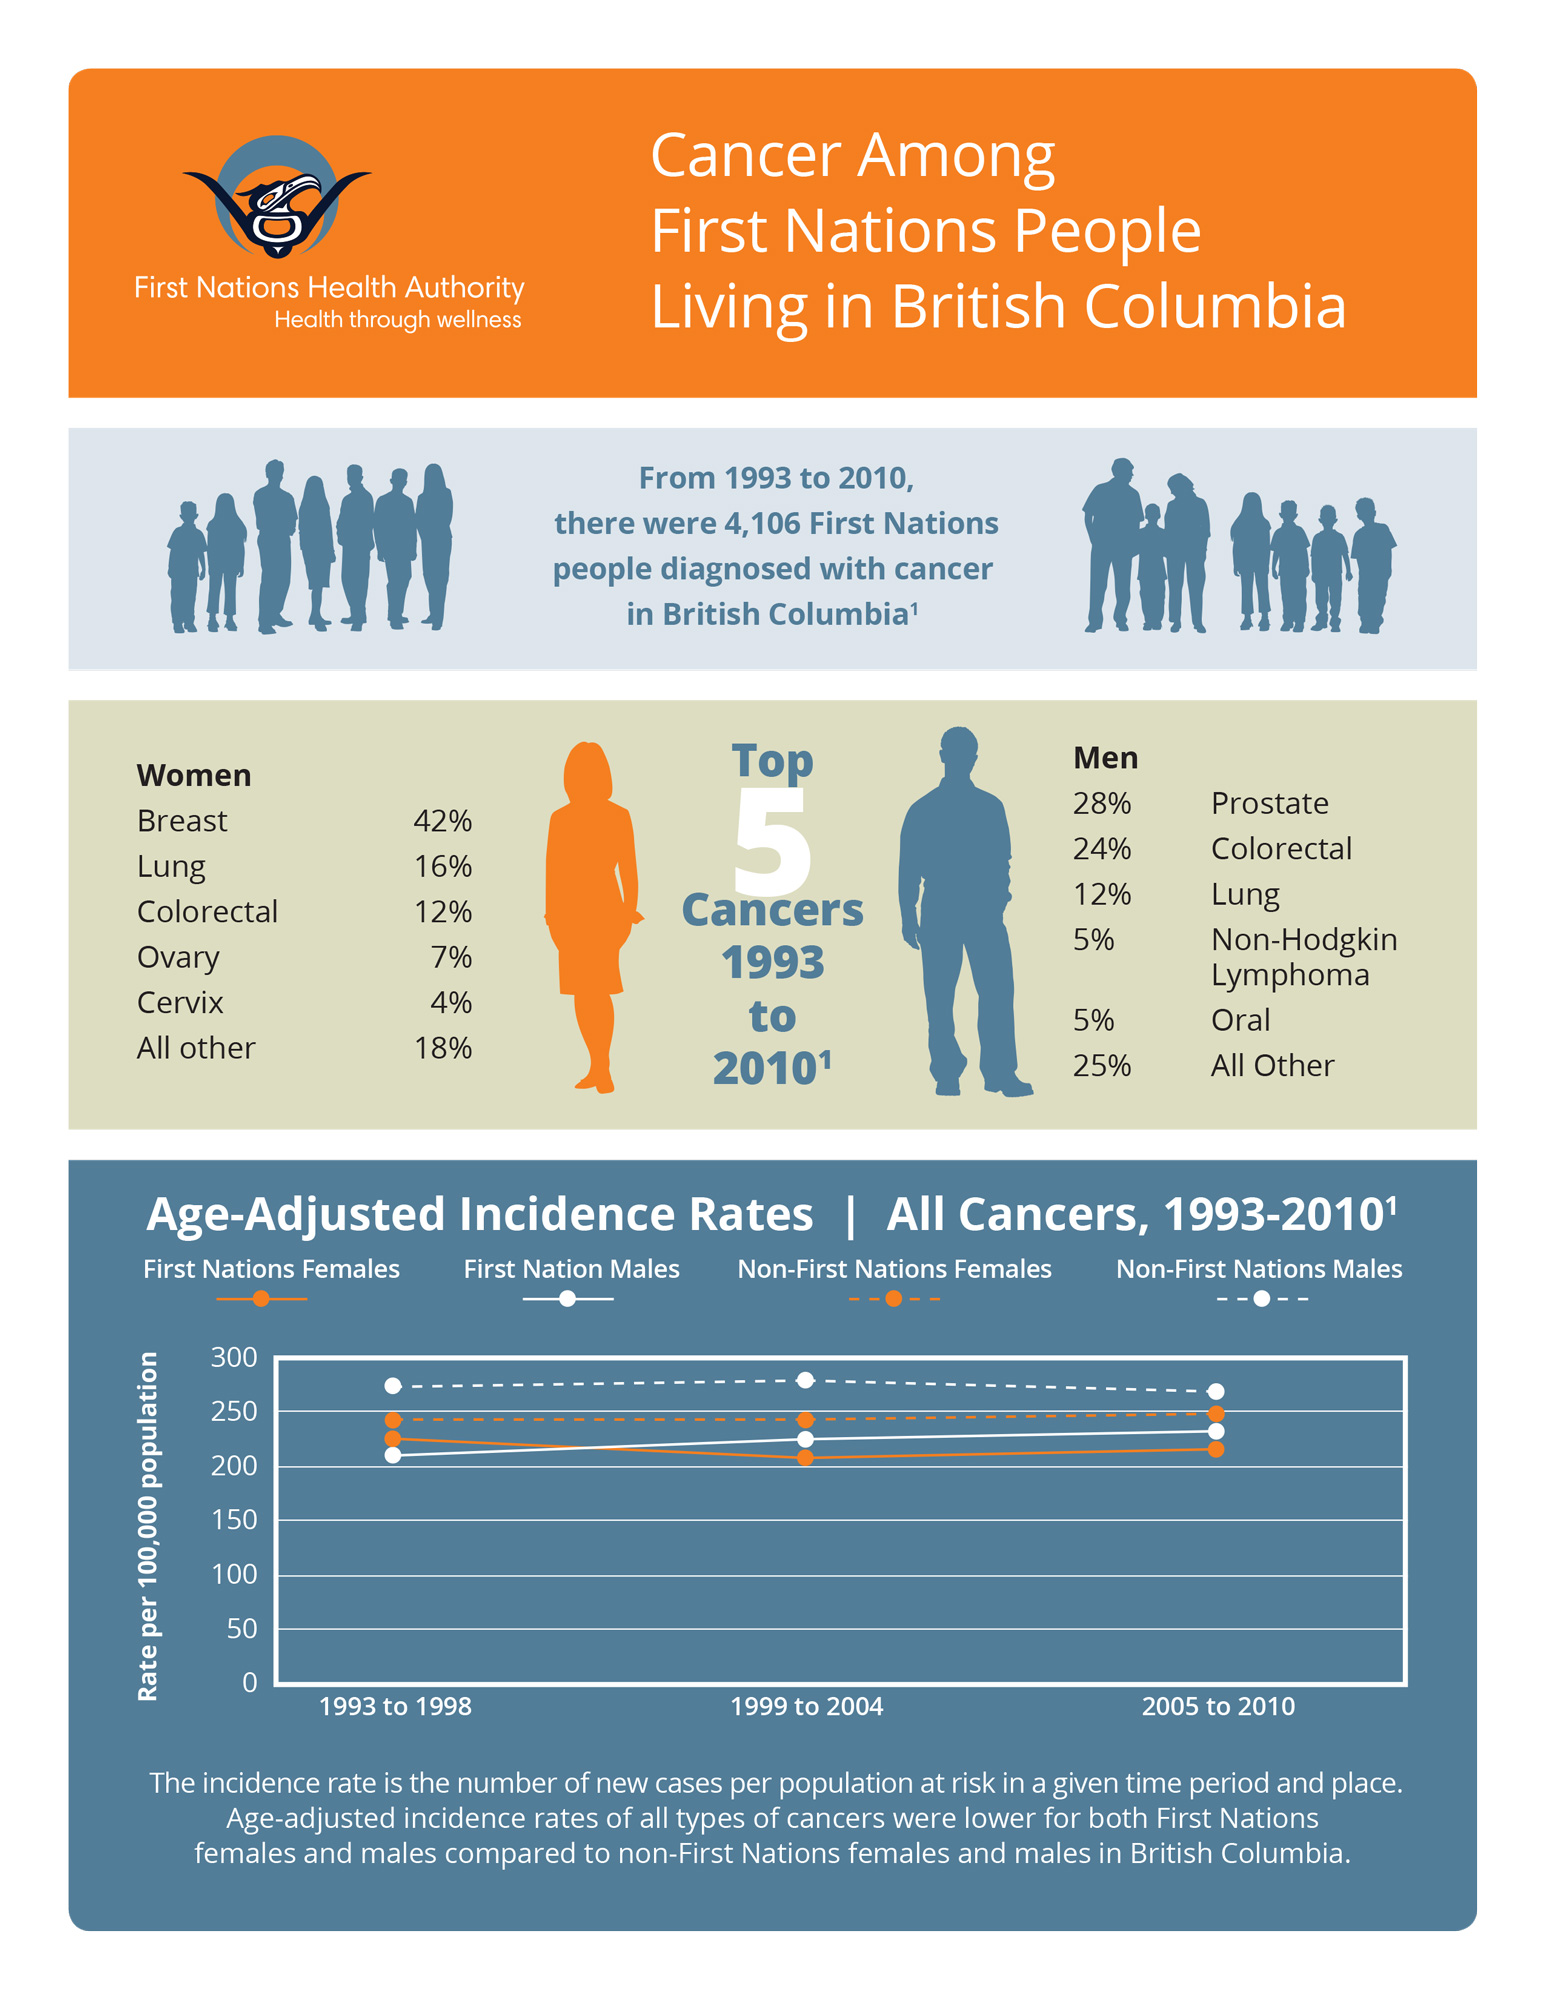 FNHA-Cancer-Among-First-Nations-People-Living-in-BC-1.jpg